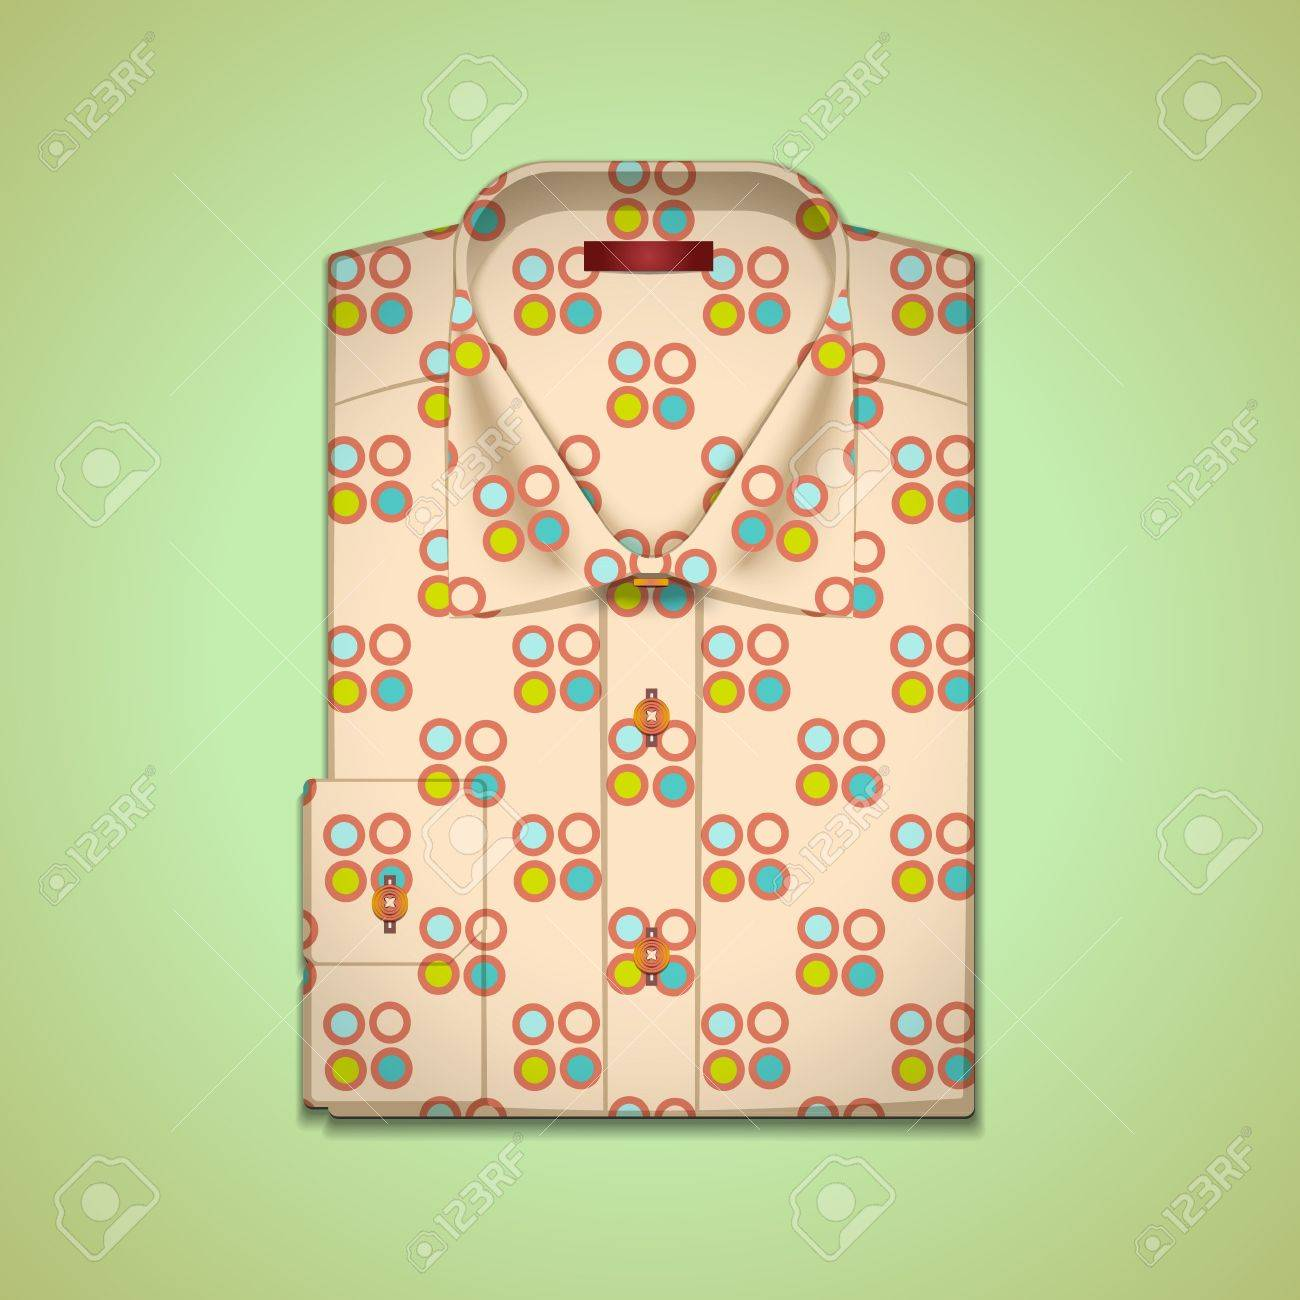 image is a man's shirt into a large peas Stock Vector - 13646298